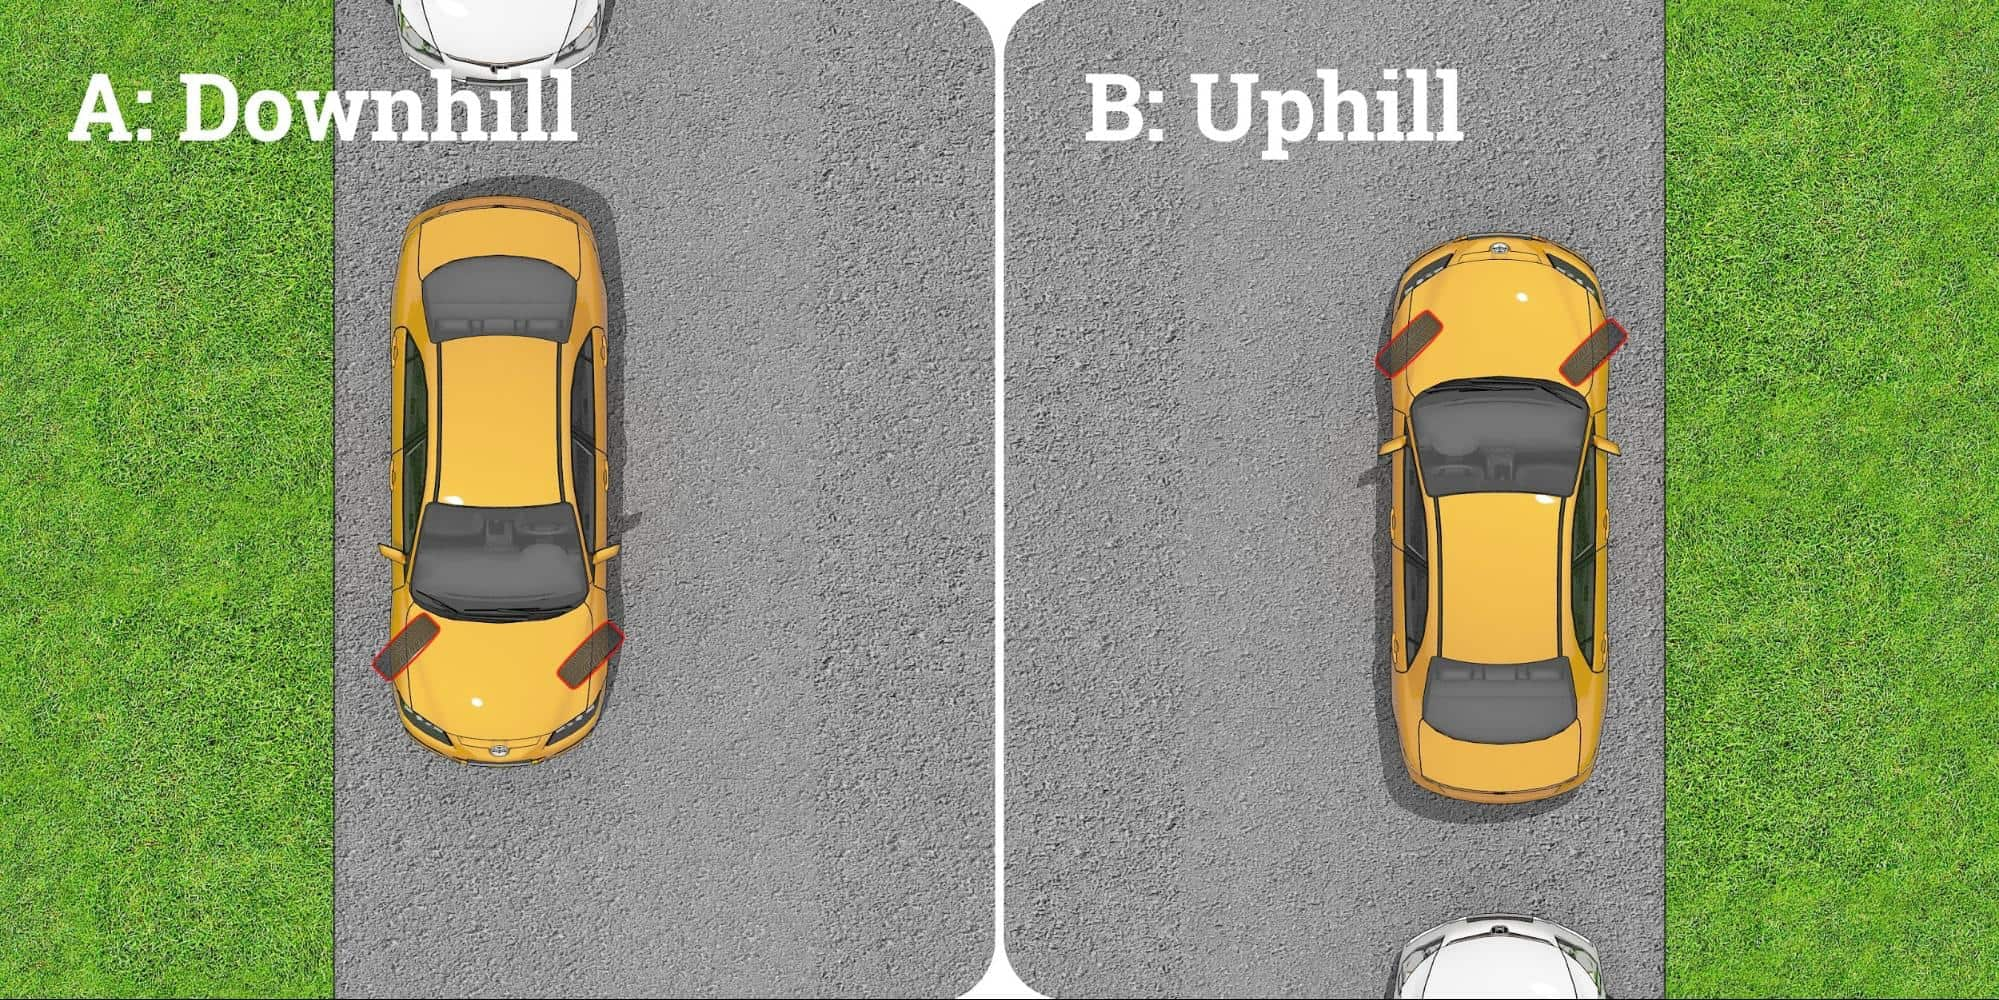 how to park uphill and downhill on roads without a curb